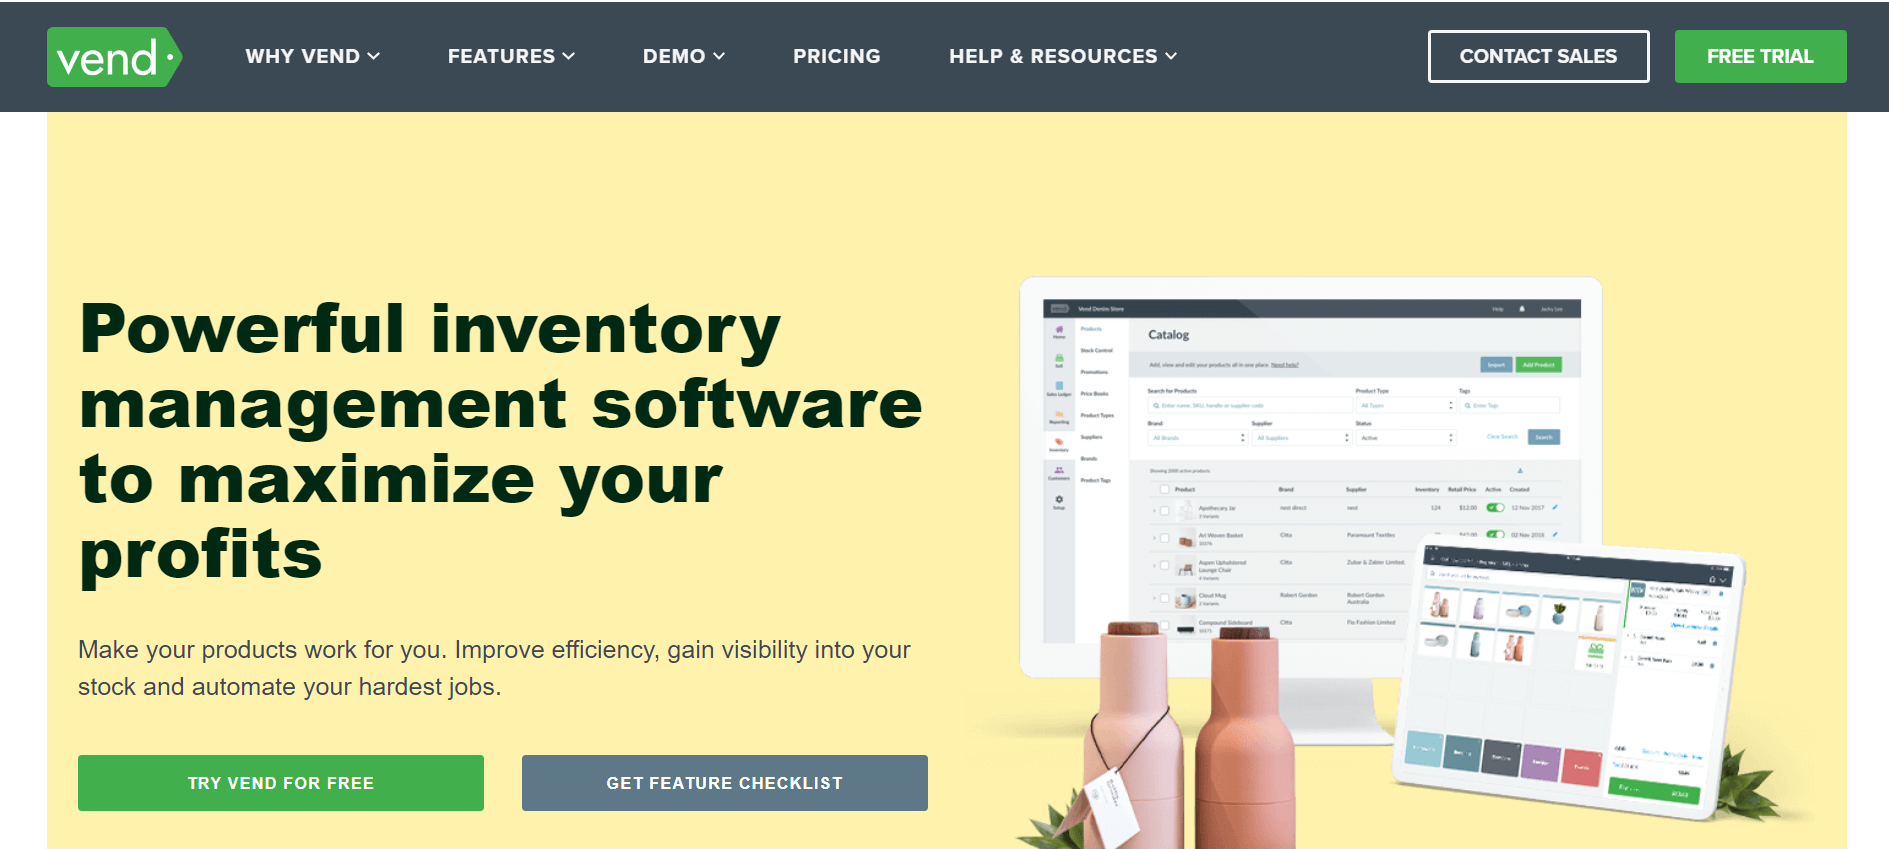 vendhq inventory management software